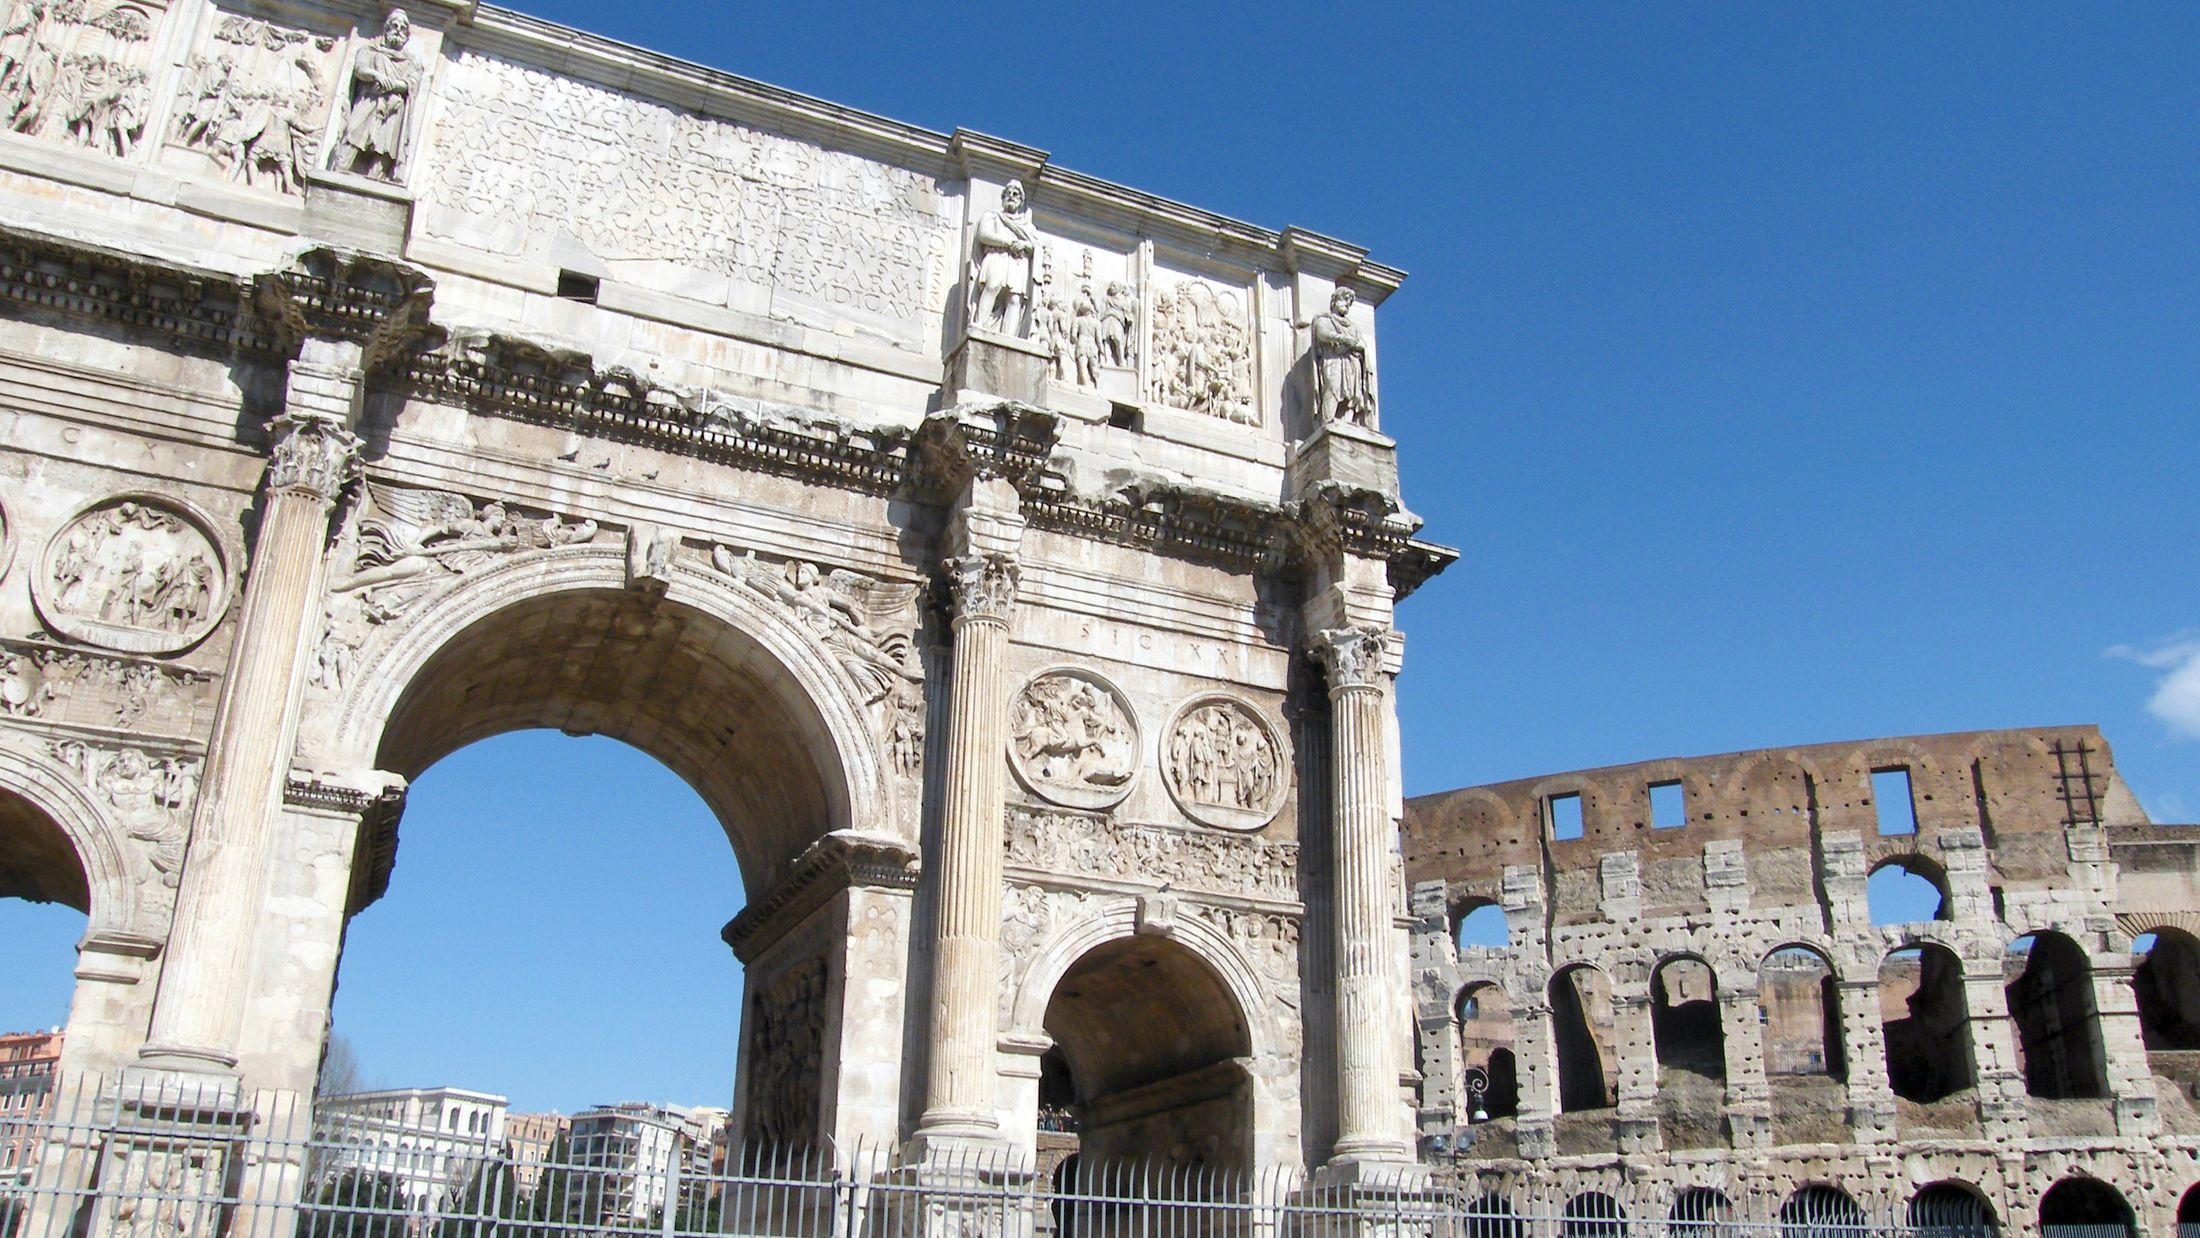 000940_Arch of Constantine Close up_Rome_Italy_Mick Barnard_001-Hybris